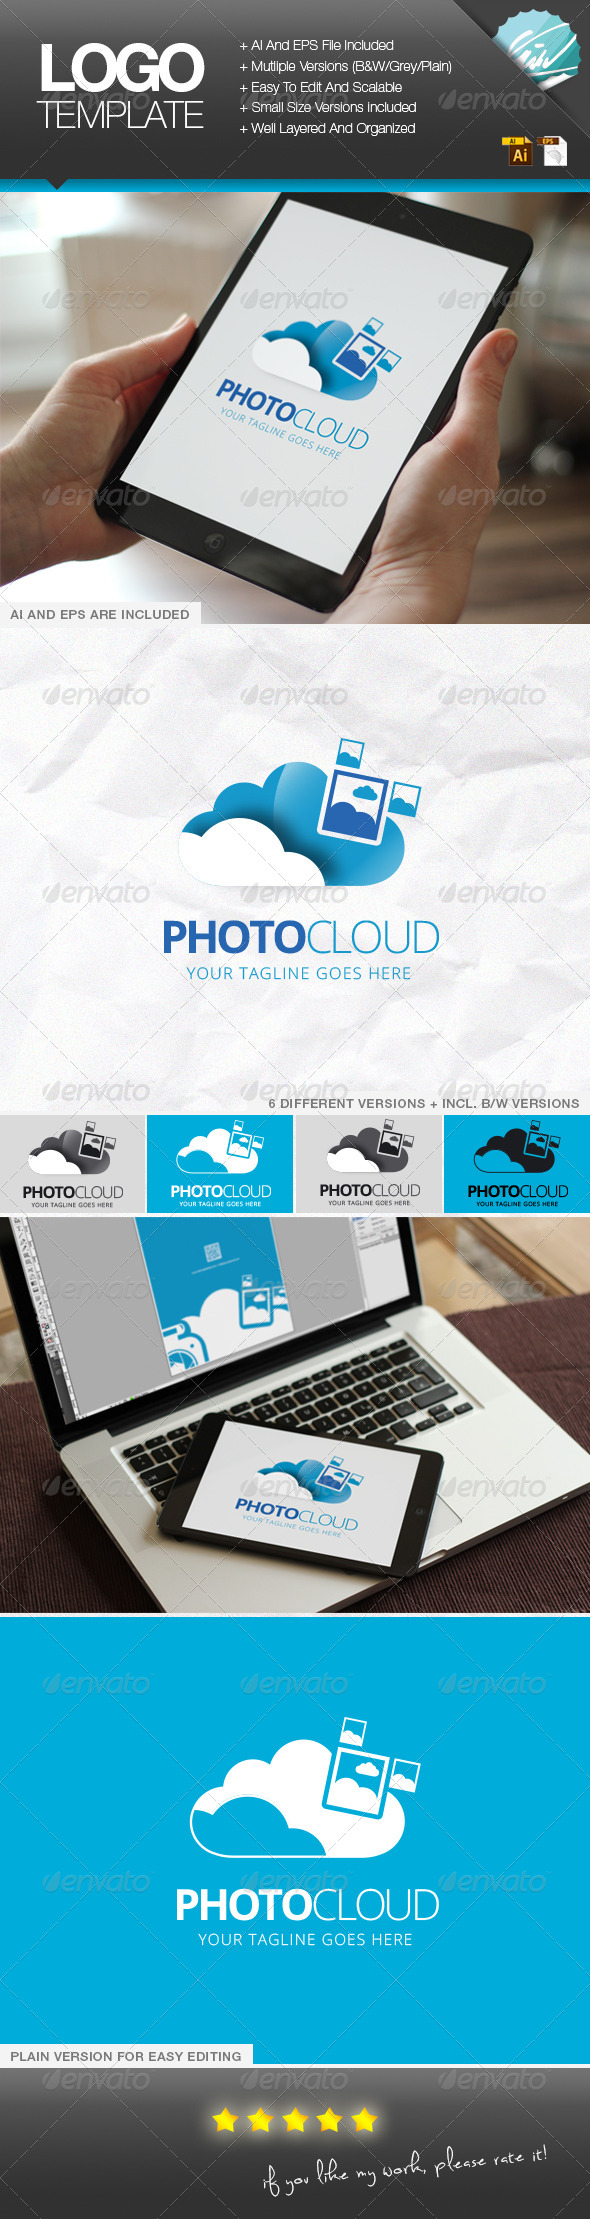 GraphicRiver PhotoCloud 6840460